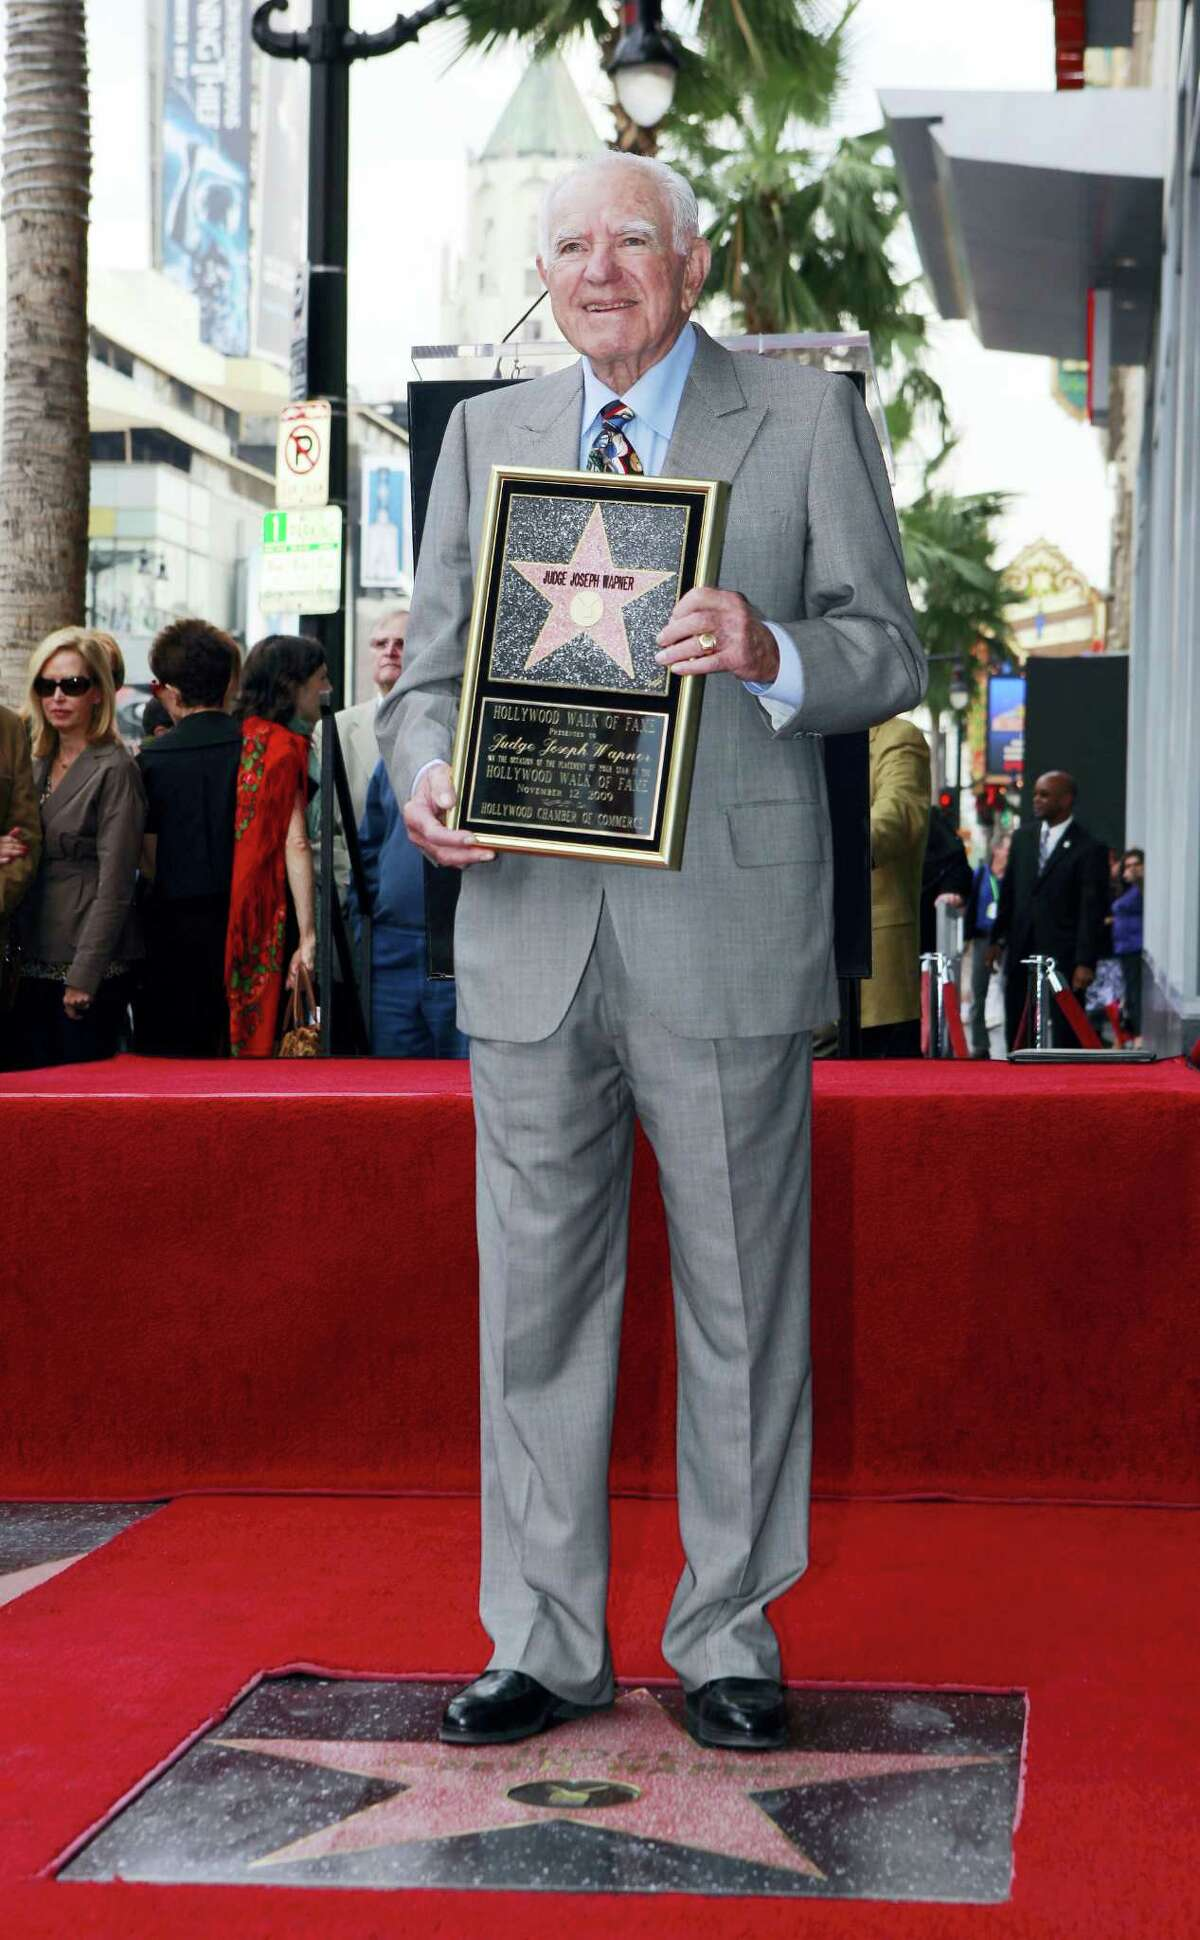 """In this Nov. 12, 2009 photo, Judge Joseph Wapner is honored with star on the Hollywood Walk of Fame in Los Angeles. Wapner, who presided over """"The People's Court"""" with steady force during the heyday of the reality courtroom show, has died. Wapner died at home in his sleep on Feb. 26, 2017, according to his son, David Wapner."""